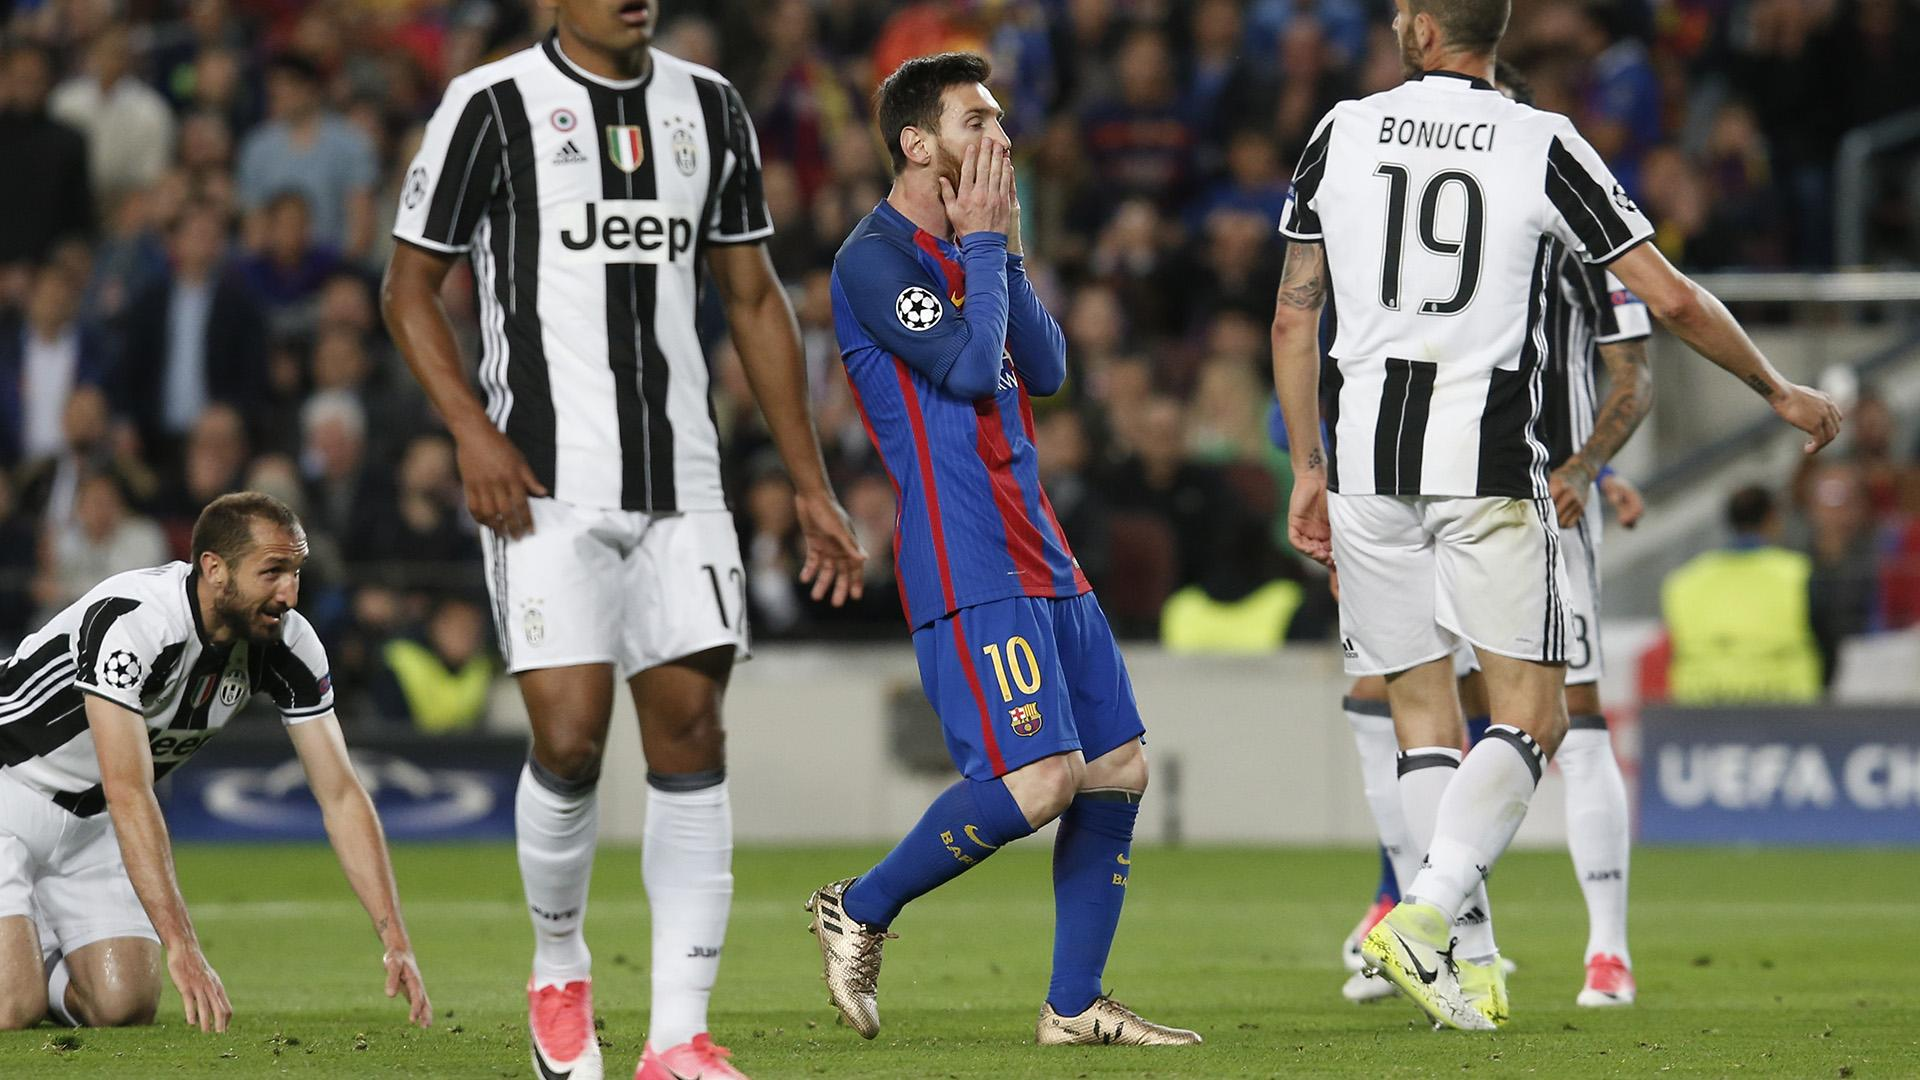 Bittersweet feeling for Dani Alves after Juve eliminate Barca